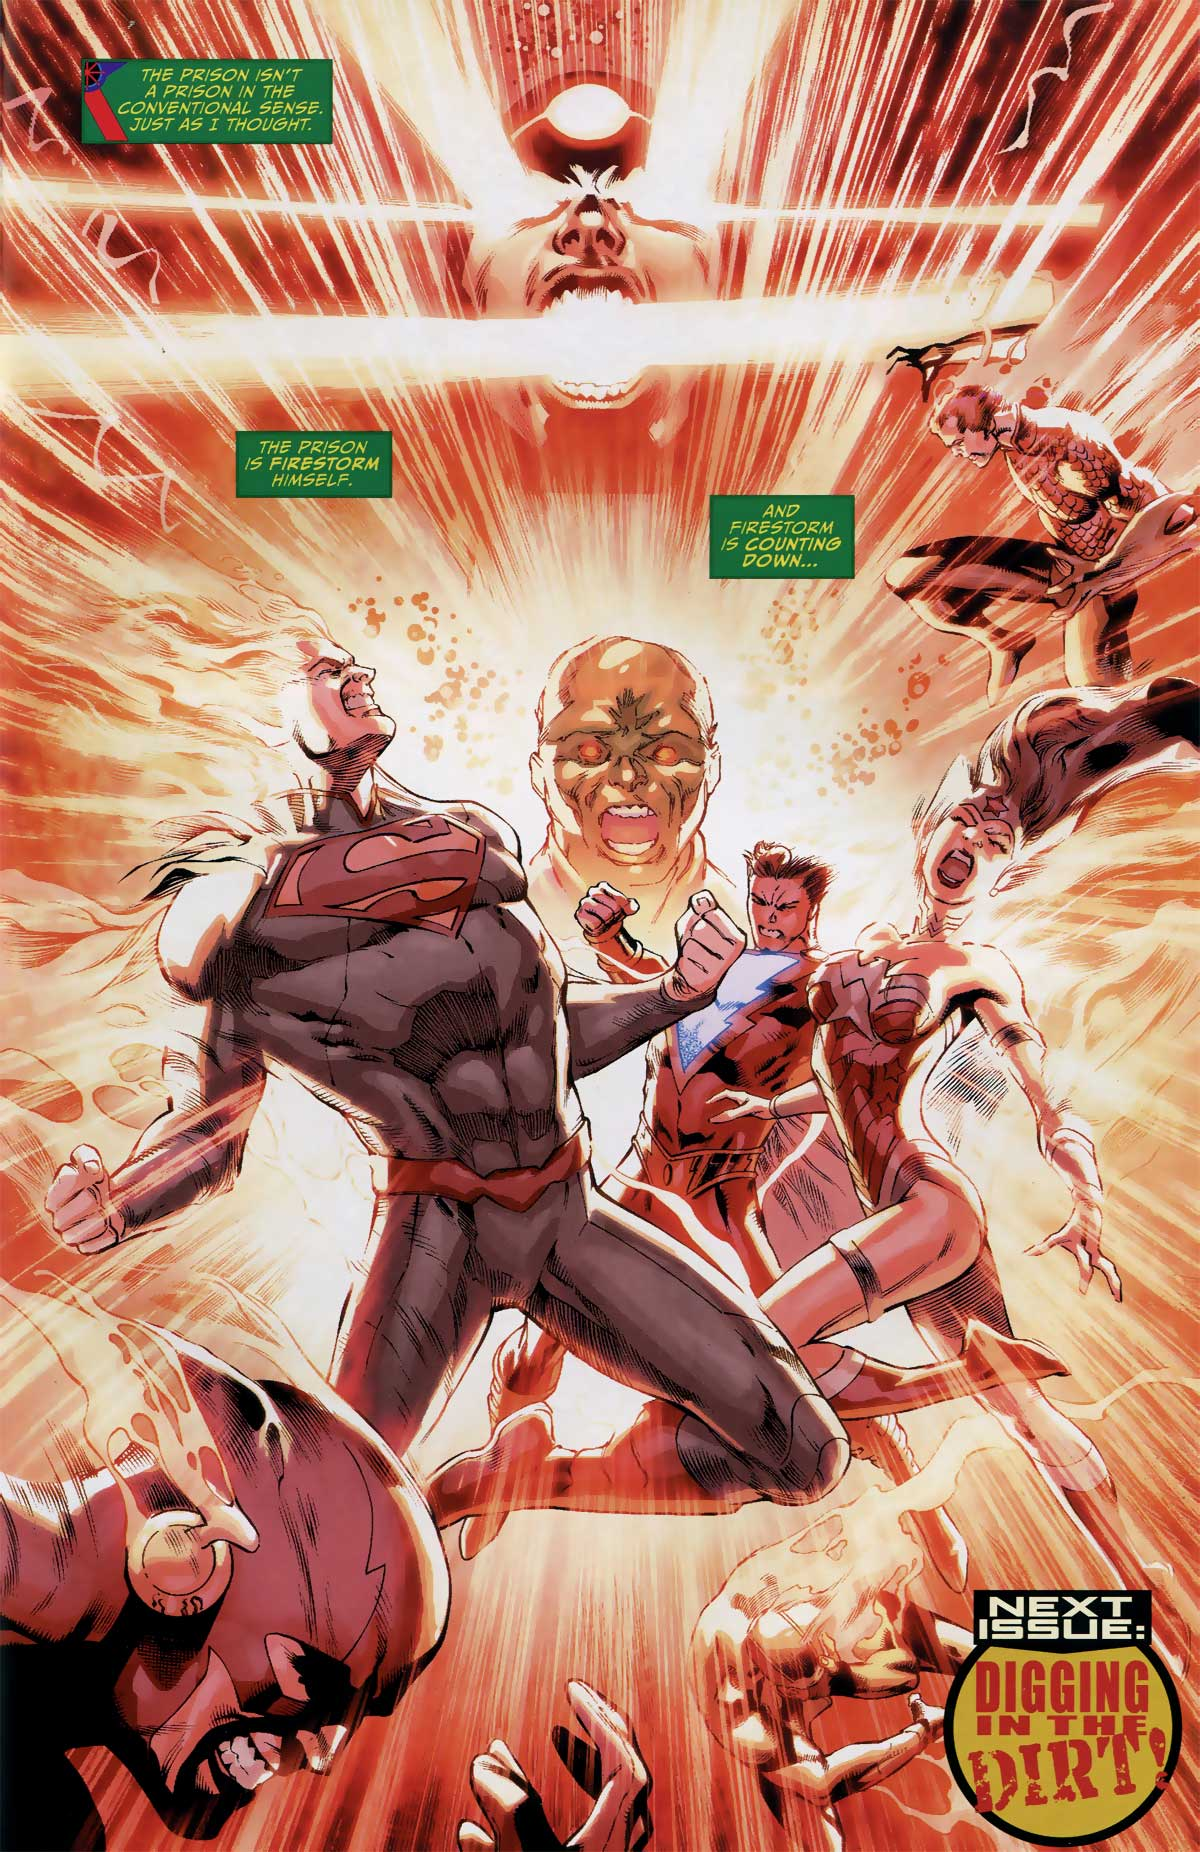 Justice League of America #10 featuring Firestorm